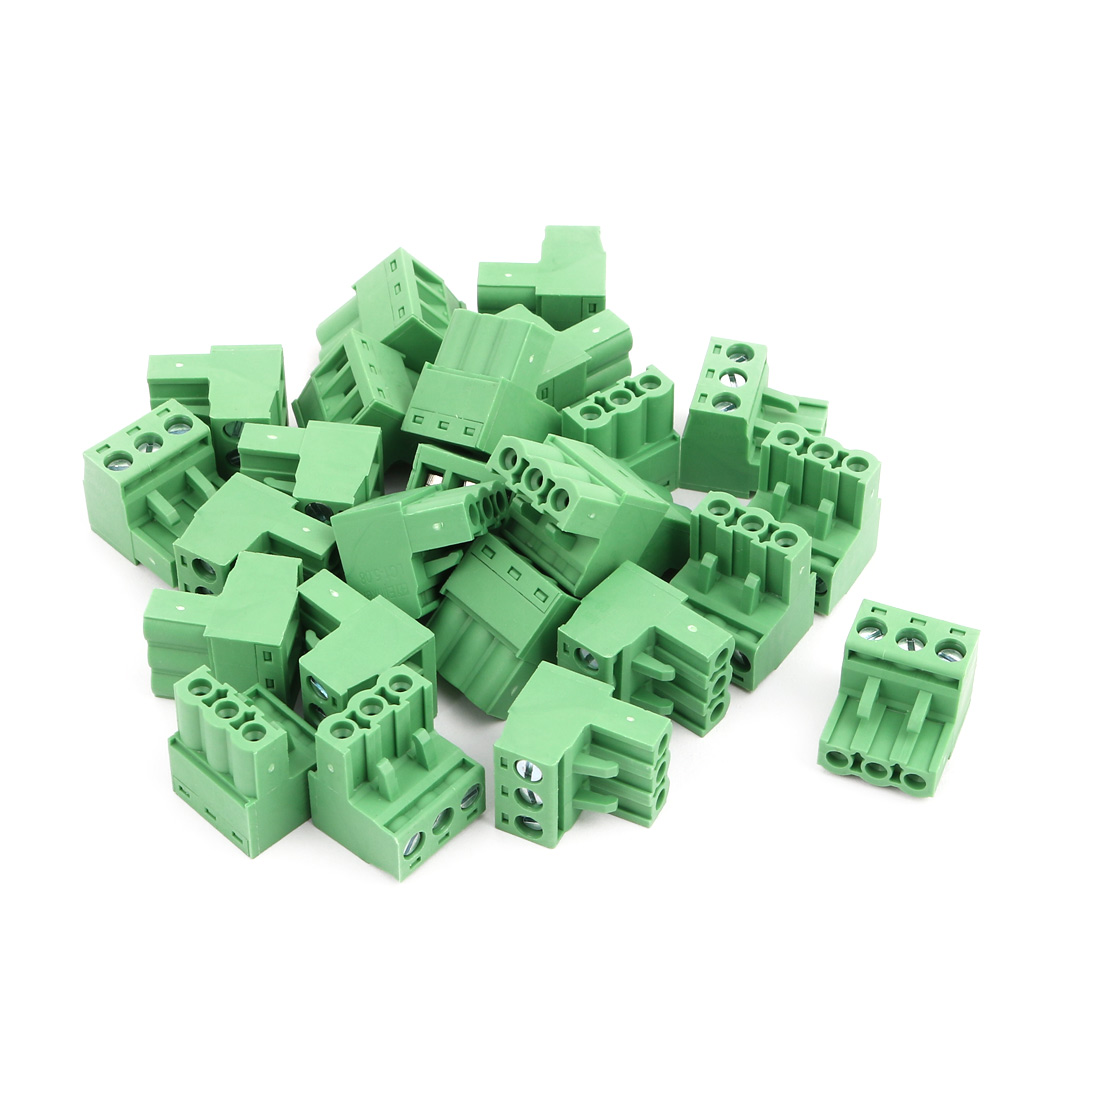 25Pcs AC 300V 15A 5.08mm Pitch 3P Terminals Block Wire Connection f PCB Mounting